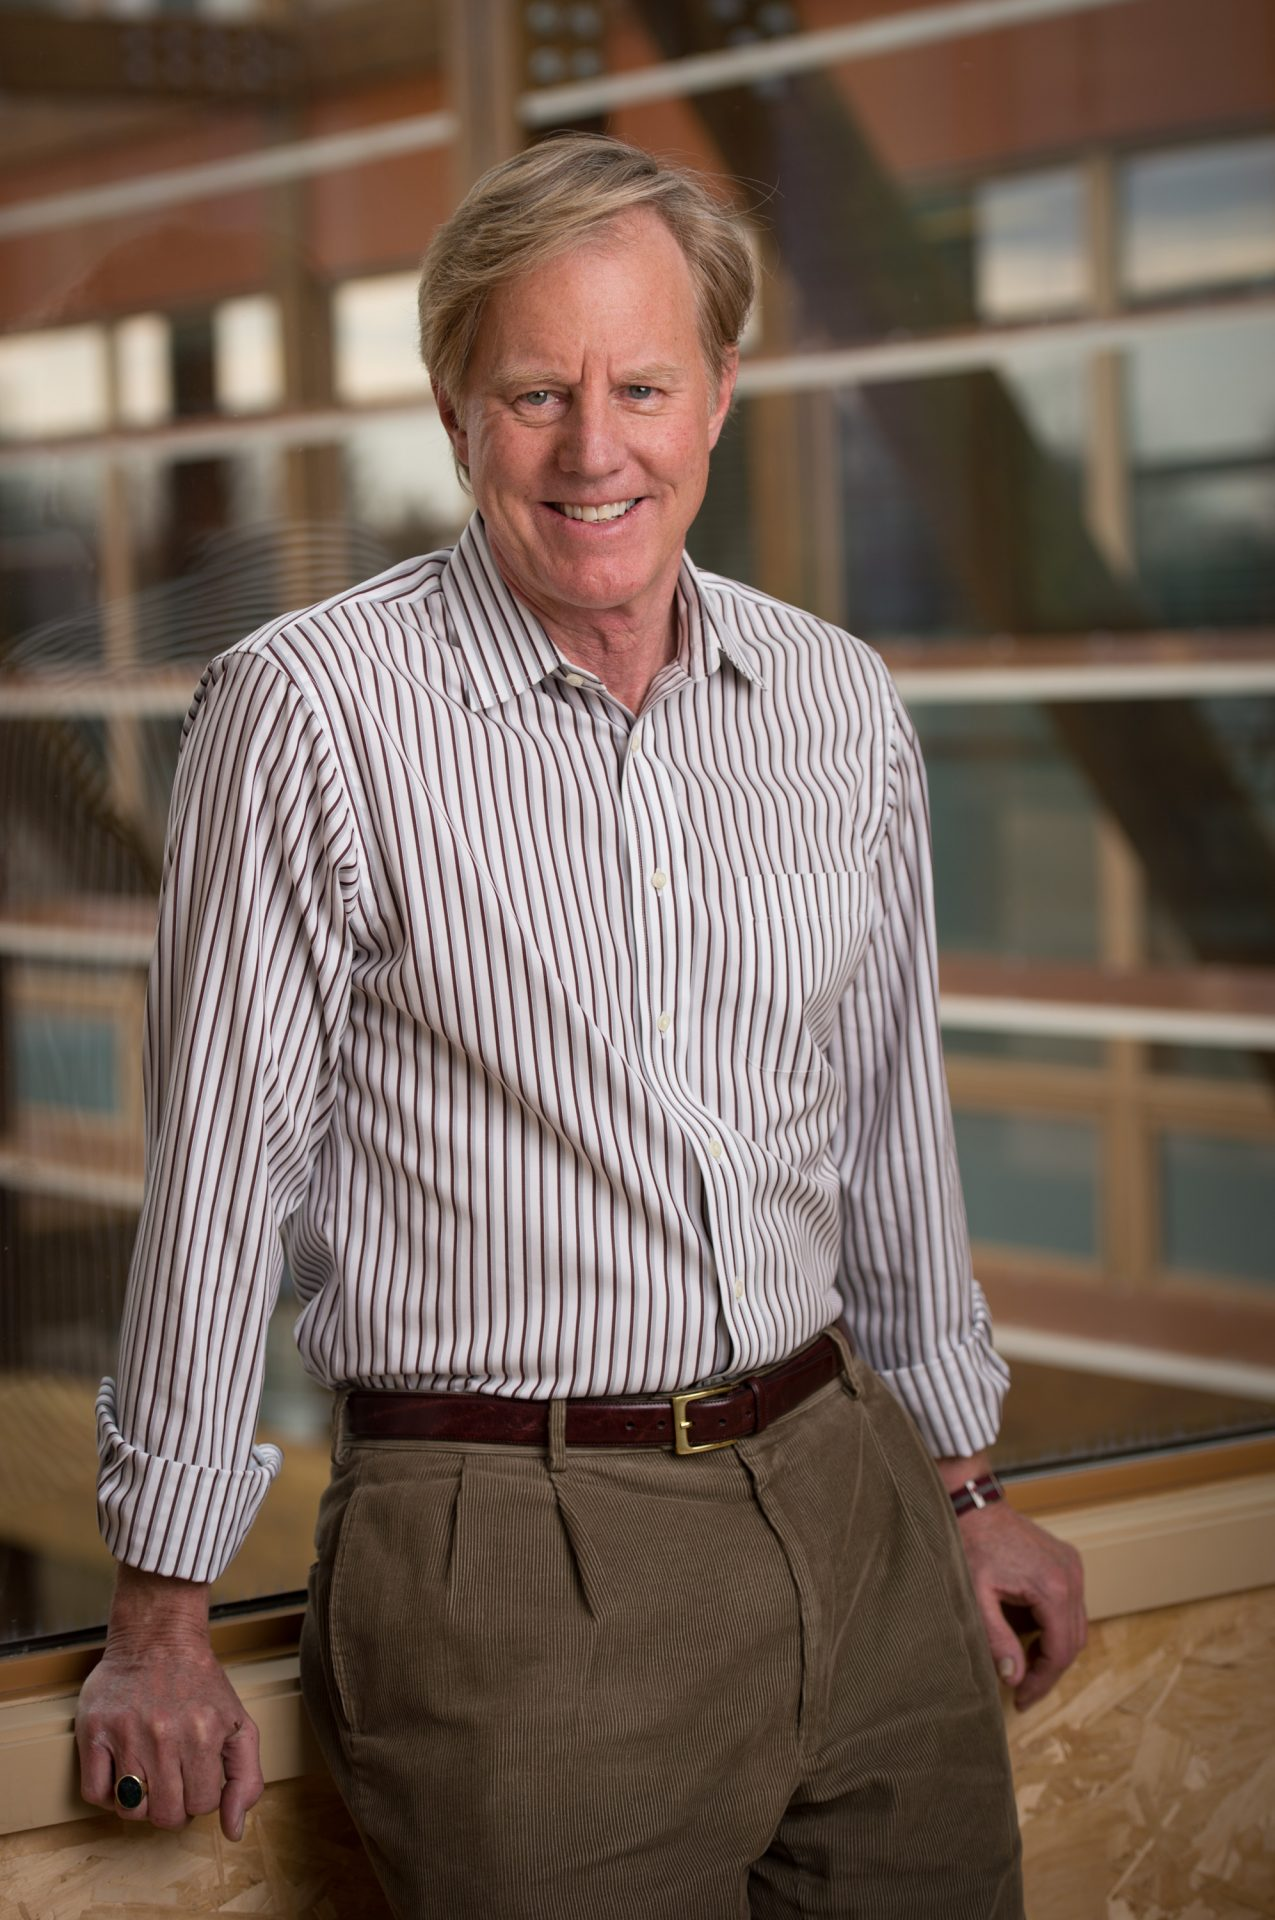 William C. Baker, President of the Chesapeake Bay Foundation, appeared on Smart Talk via phone call on February 10, 2020. Photo taken by Mike Busada.